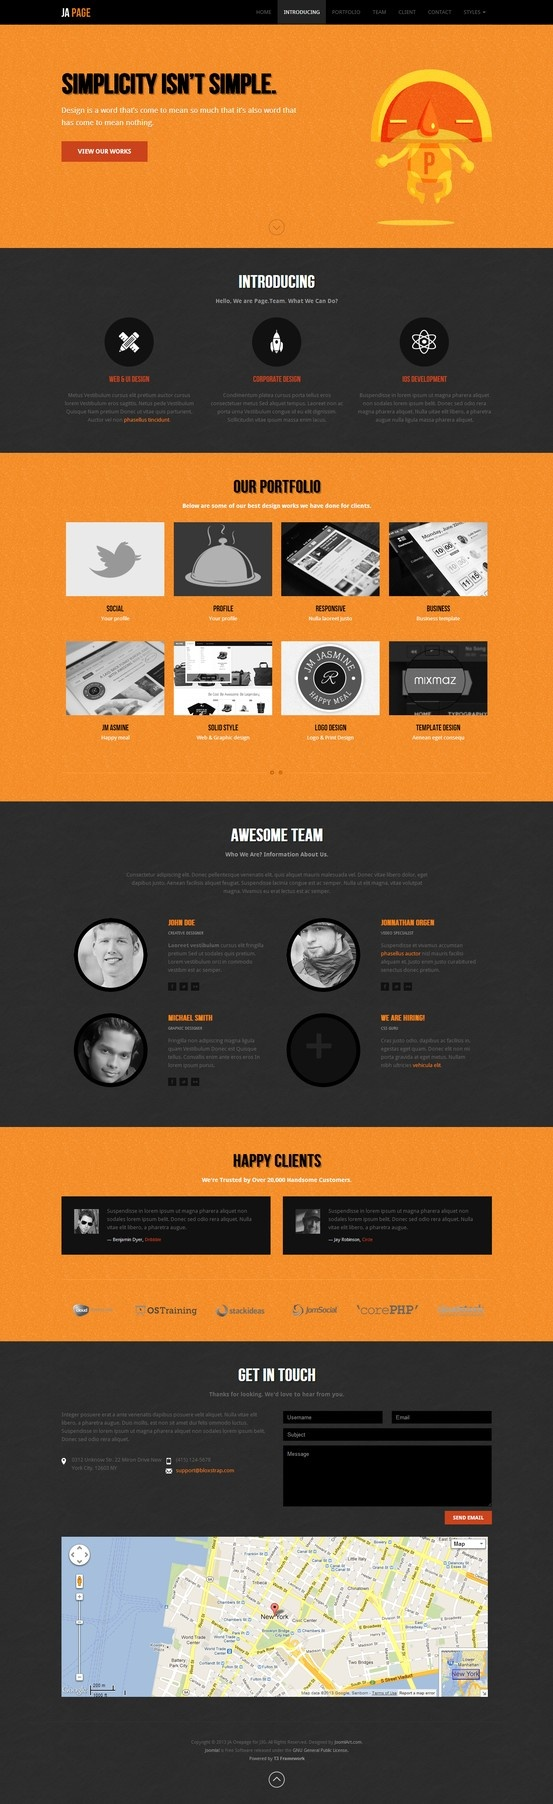 Amazing 1 2 3 Nu Opgaver Kapitel Resume Tiny 1 Page Resume Format Download Regular 1 Page Resume Format Free Download 1 Year Experience Java Resume Format Young 1 Year Experience Resume Format For Dot Net Gray1 Year Experience Resume Format For Java 136 Best Images About Joomla 2.5 Templates On Pinterest | Portal ..